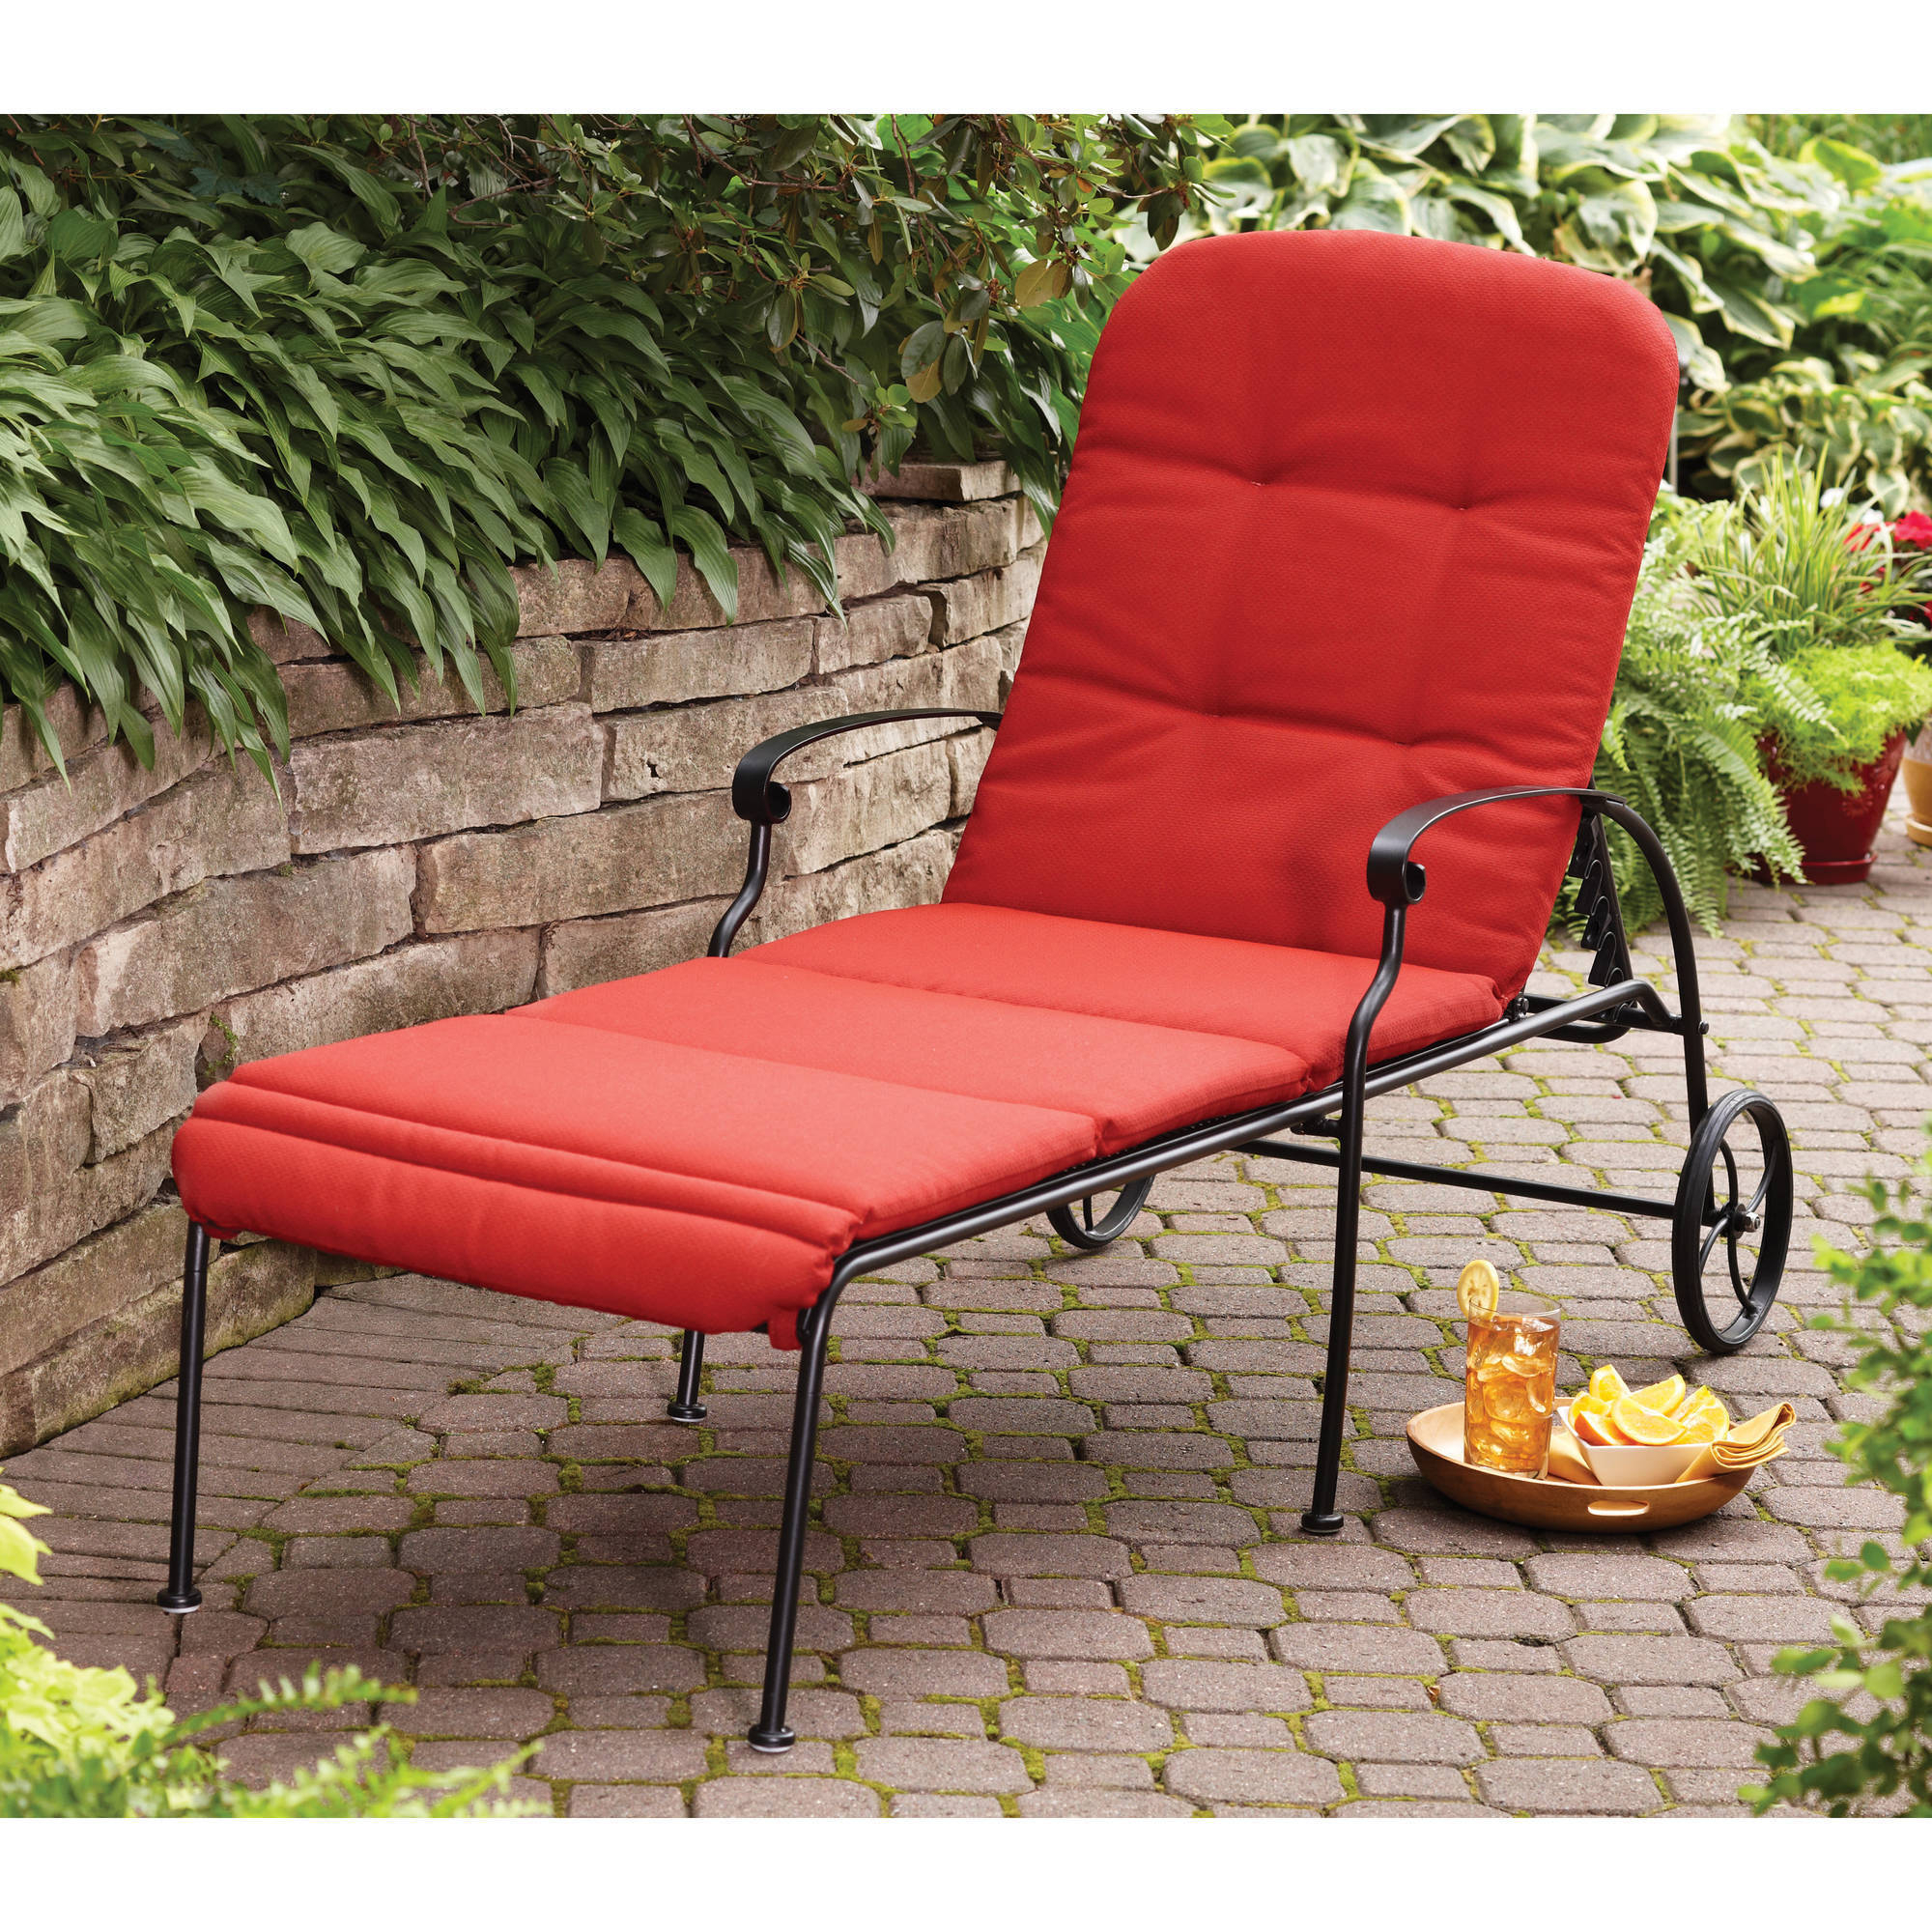 Better Homes & Gardens Clayton Court Chaise Lounge With Wheels, Red Inside Most Recent Outdoor Cart Wheel Adjustable Chaise Lounge Chairs (View 4 of 25)